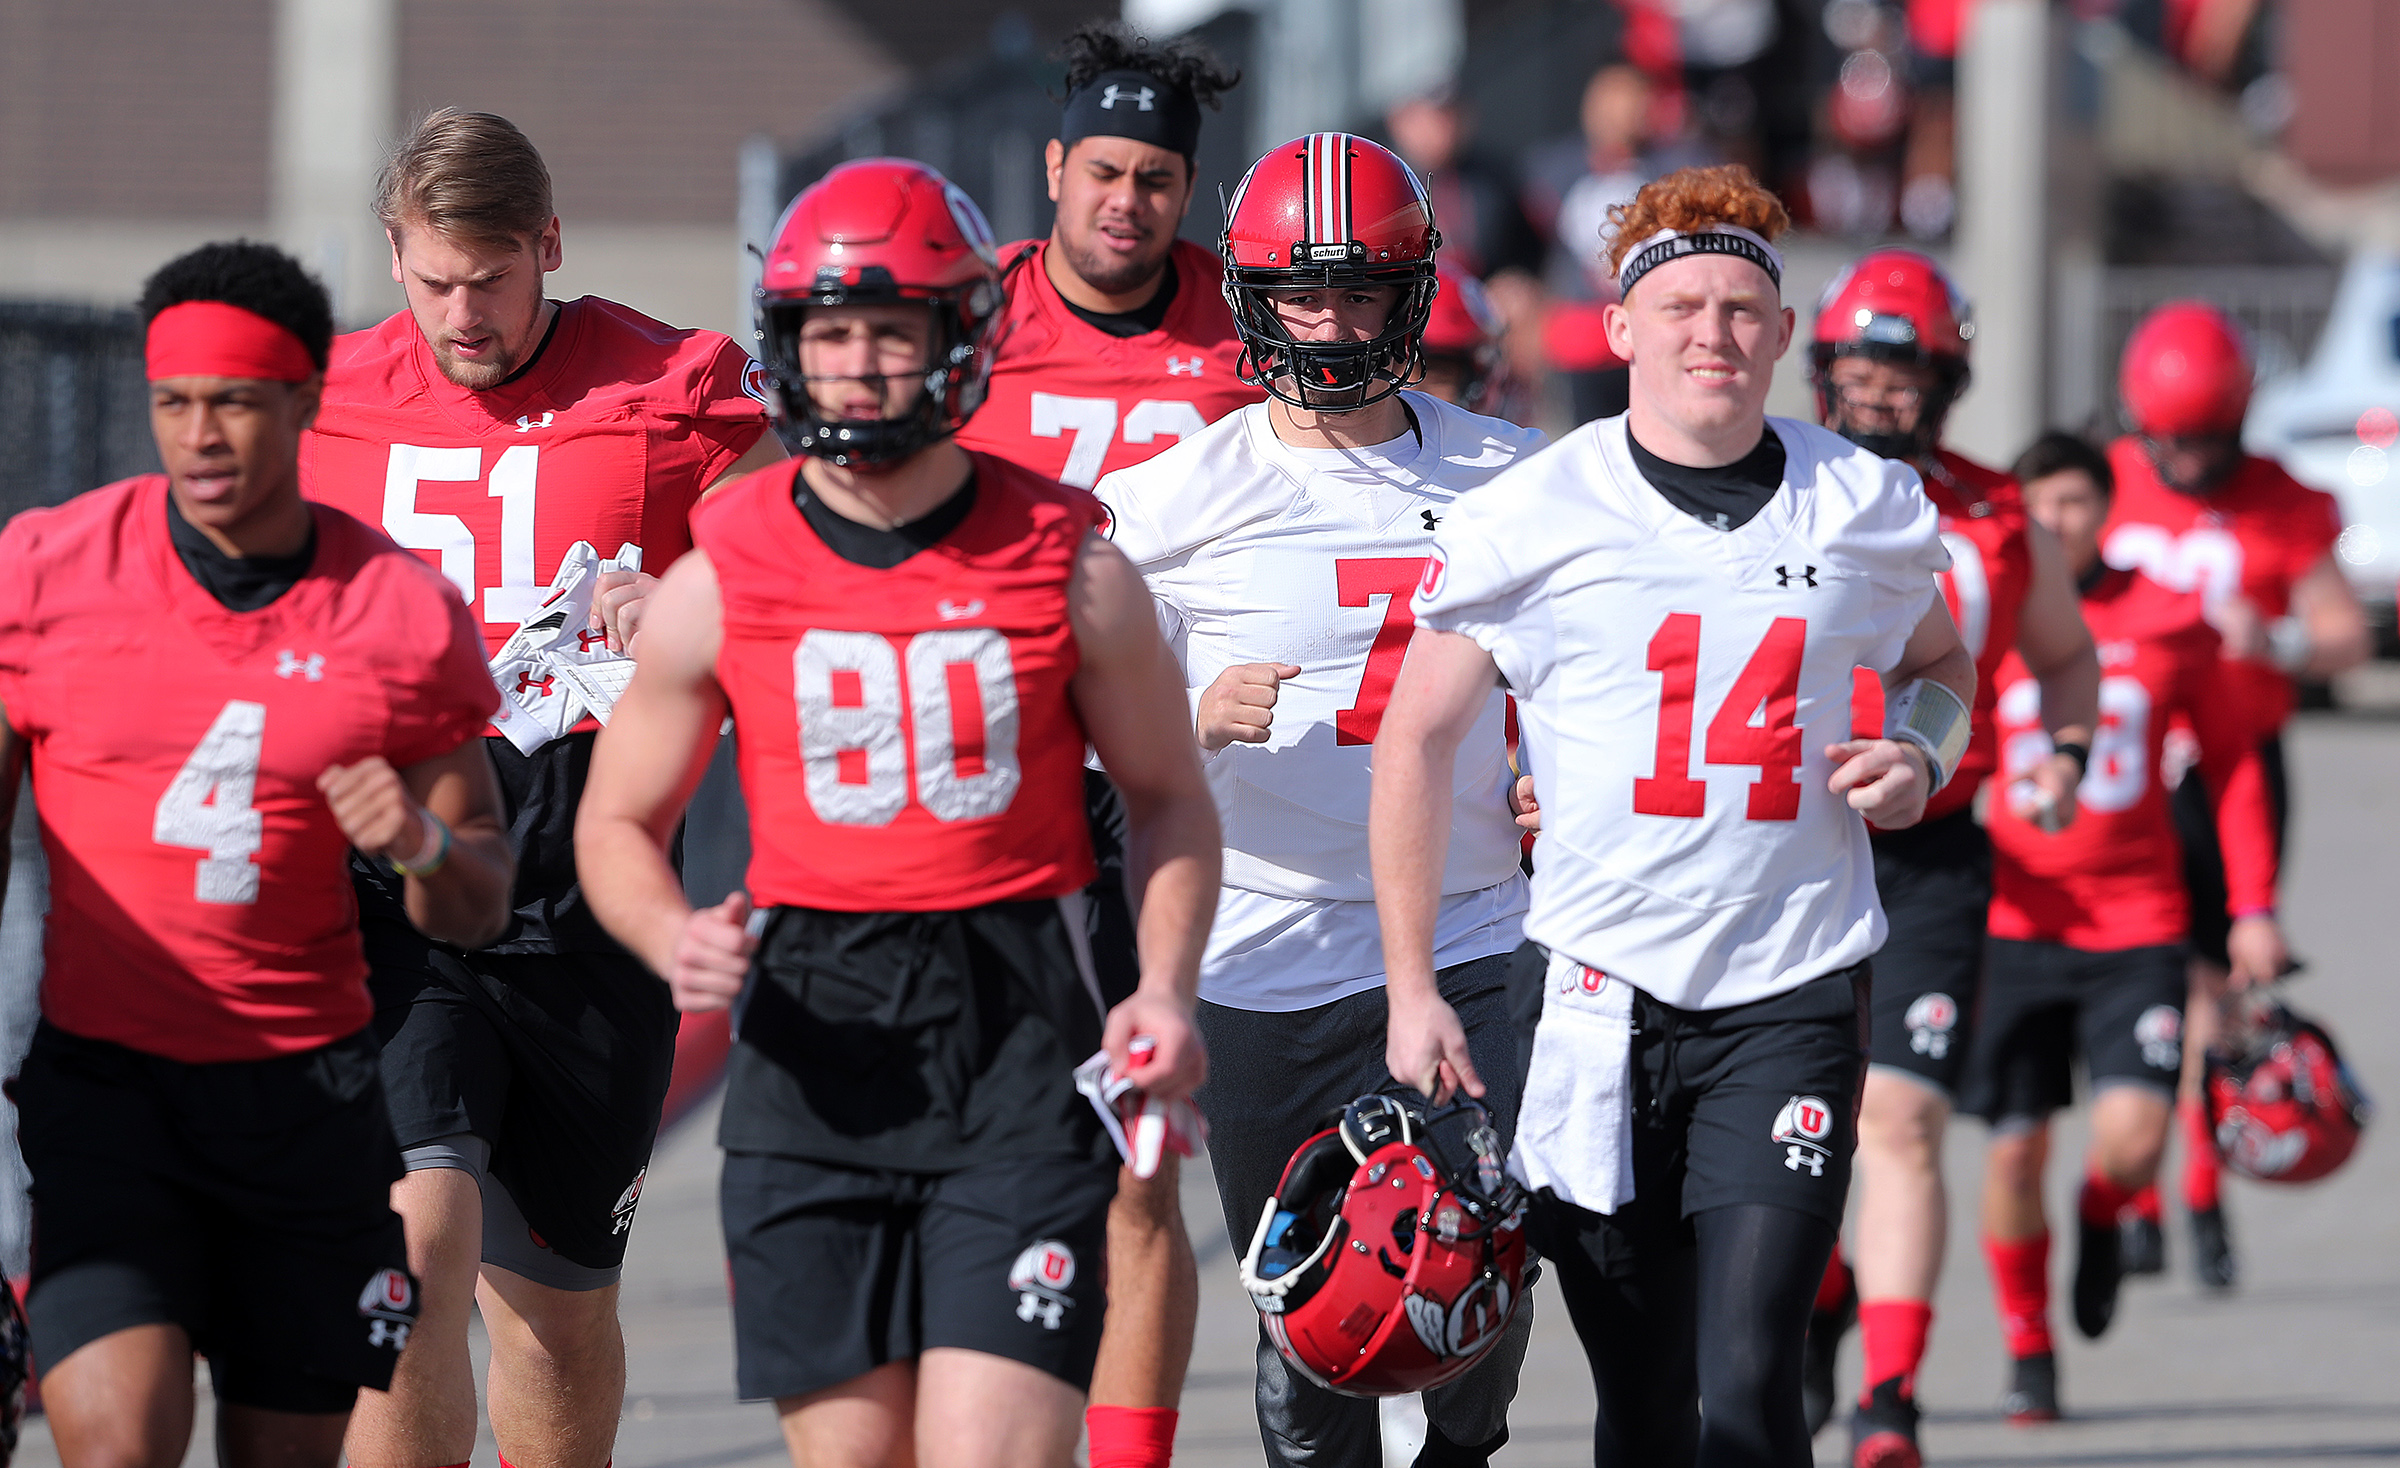 Members of the University of Utah football team run out to the practice fields as they open spring camp in Salt Lake City on Monday, March 2, 2020.